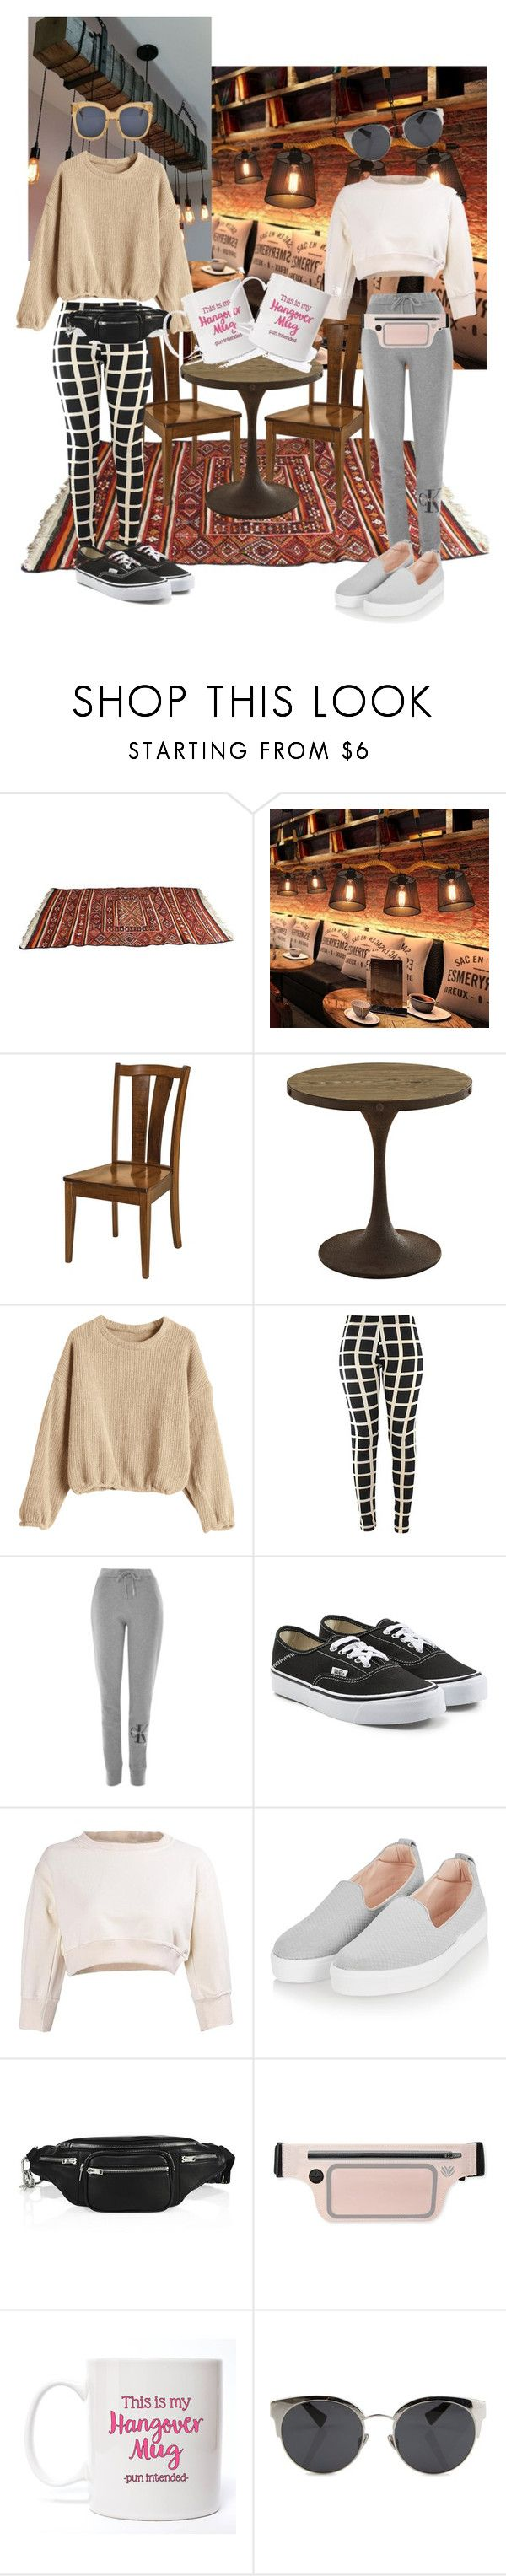 """""""Next-day-coffee after clubbing"""" by sunny-sannie ❤ liked on Polyvore featuring DutchCrafters, Calvin Klein, Vans, Topshop, Alexander Wang, Forever 21, Christian Dior and CÉLINE"""